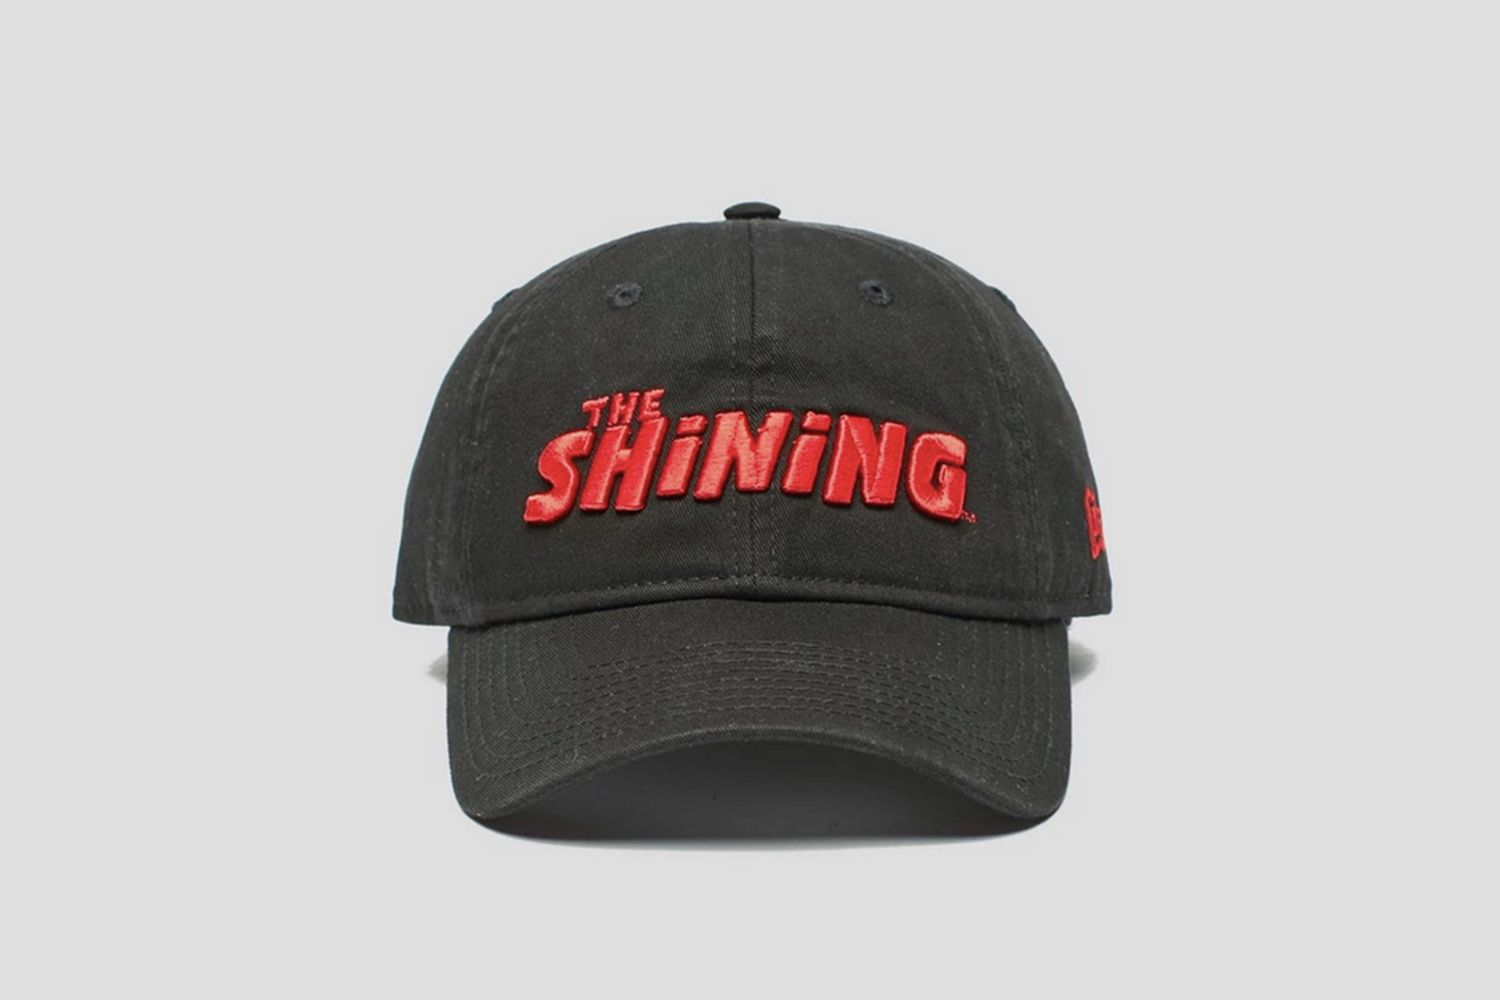 920 The Shining Cap